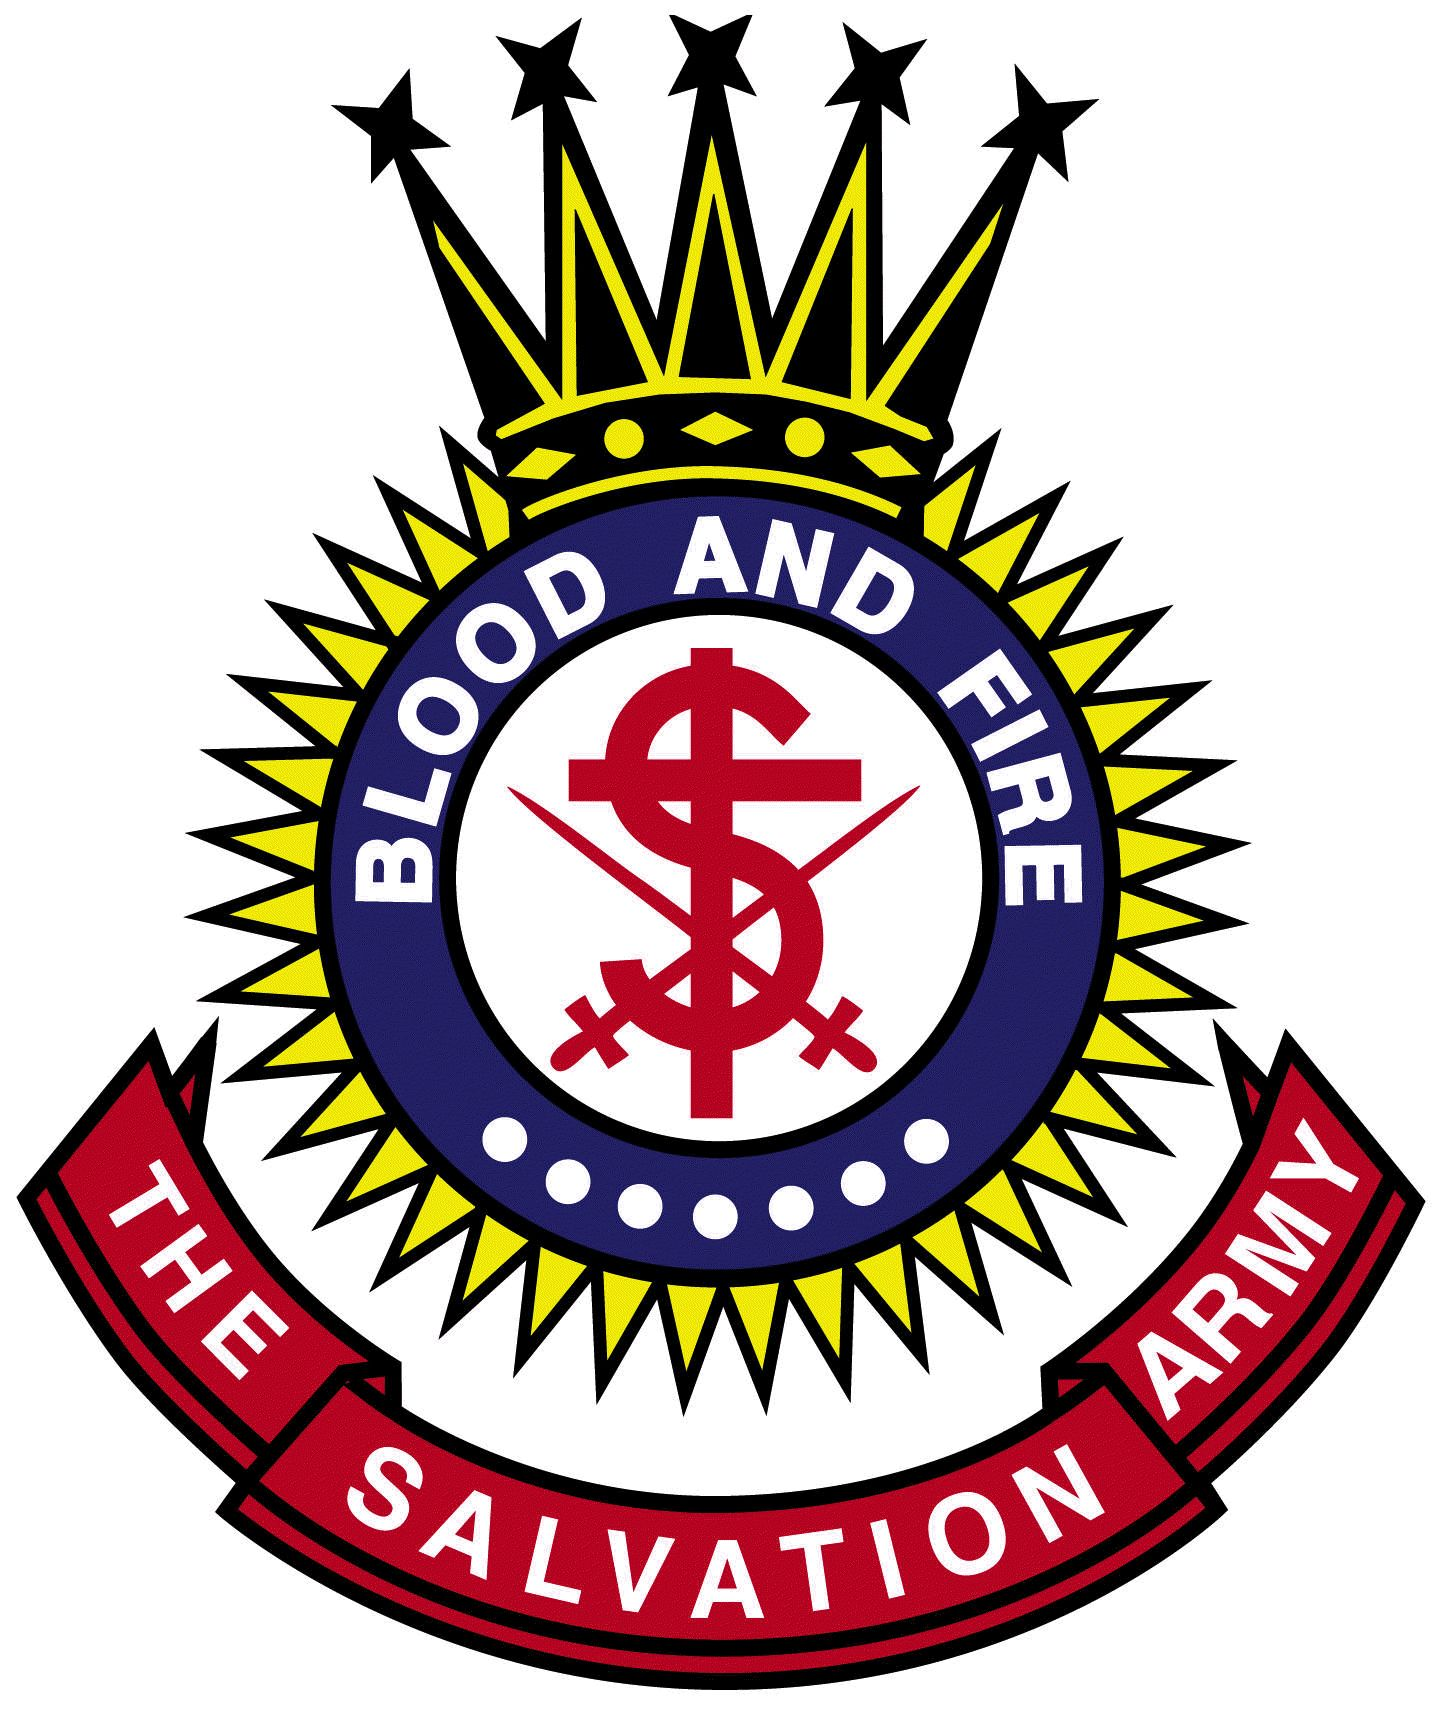 The salvation army salvation army pinterest the salvation army biocorpaavc Choice Image